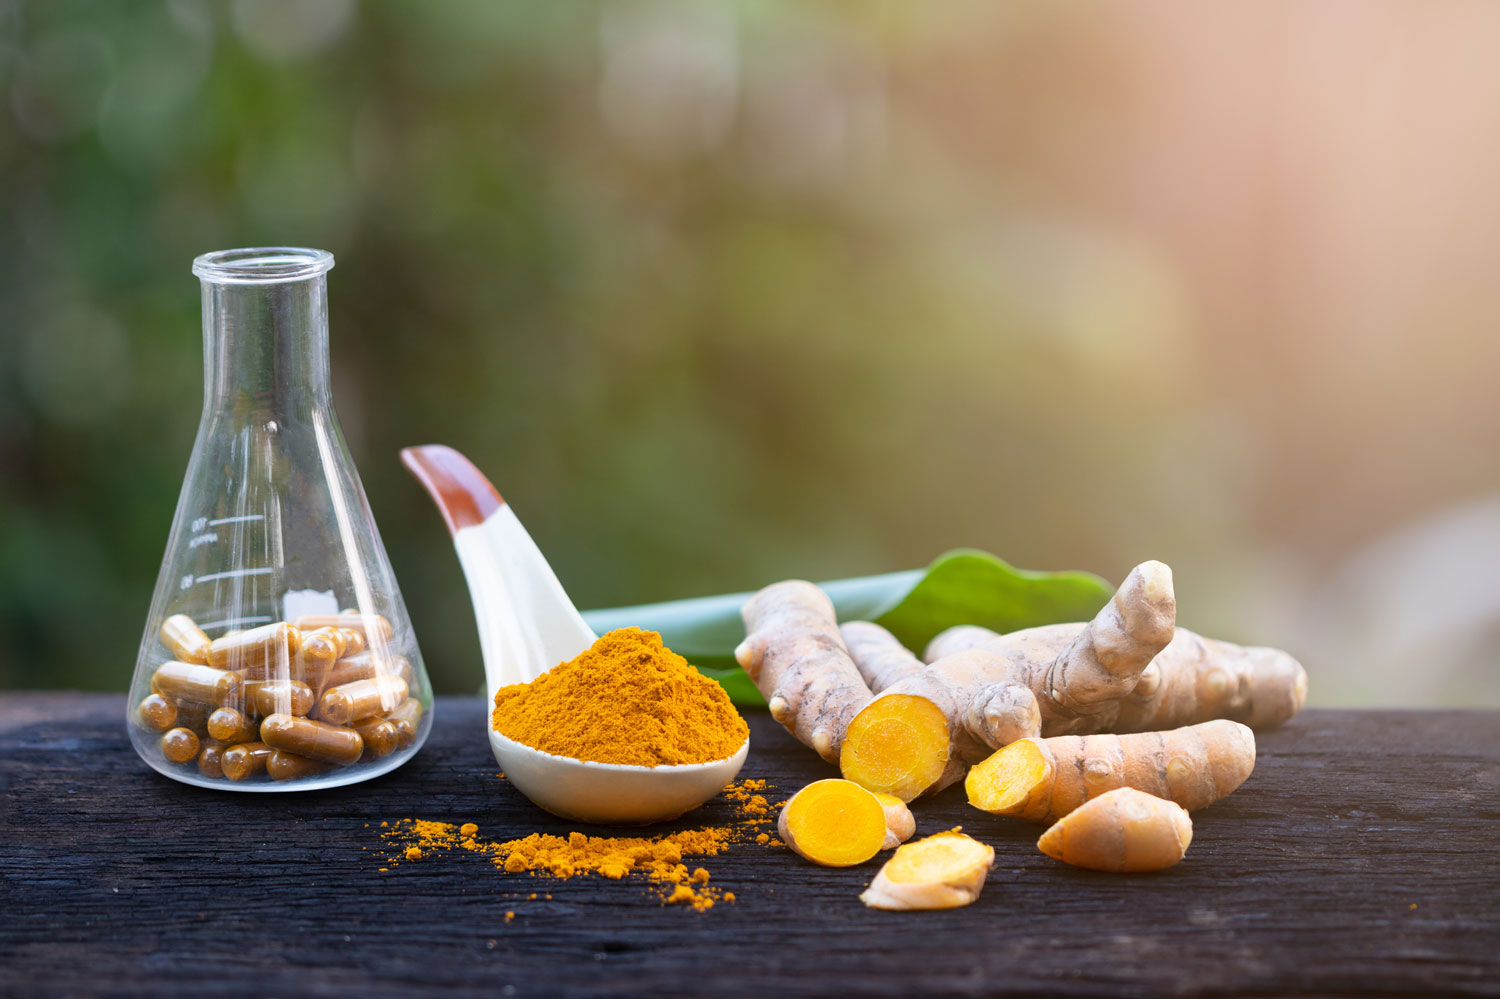 turmeric root and powder in spoon